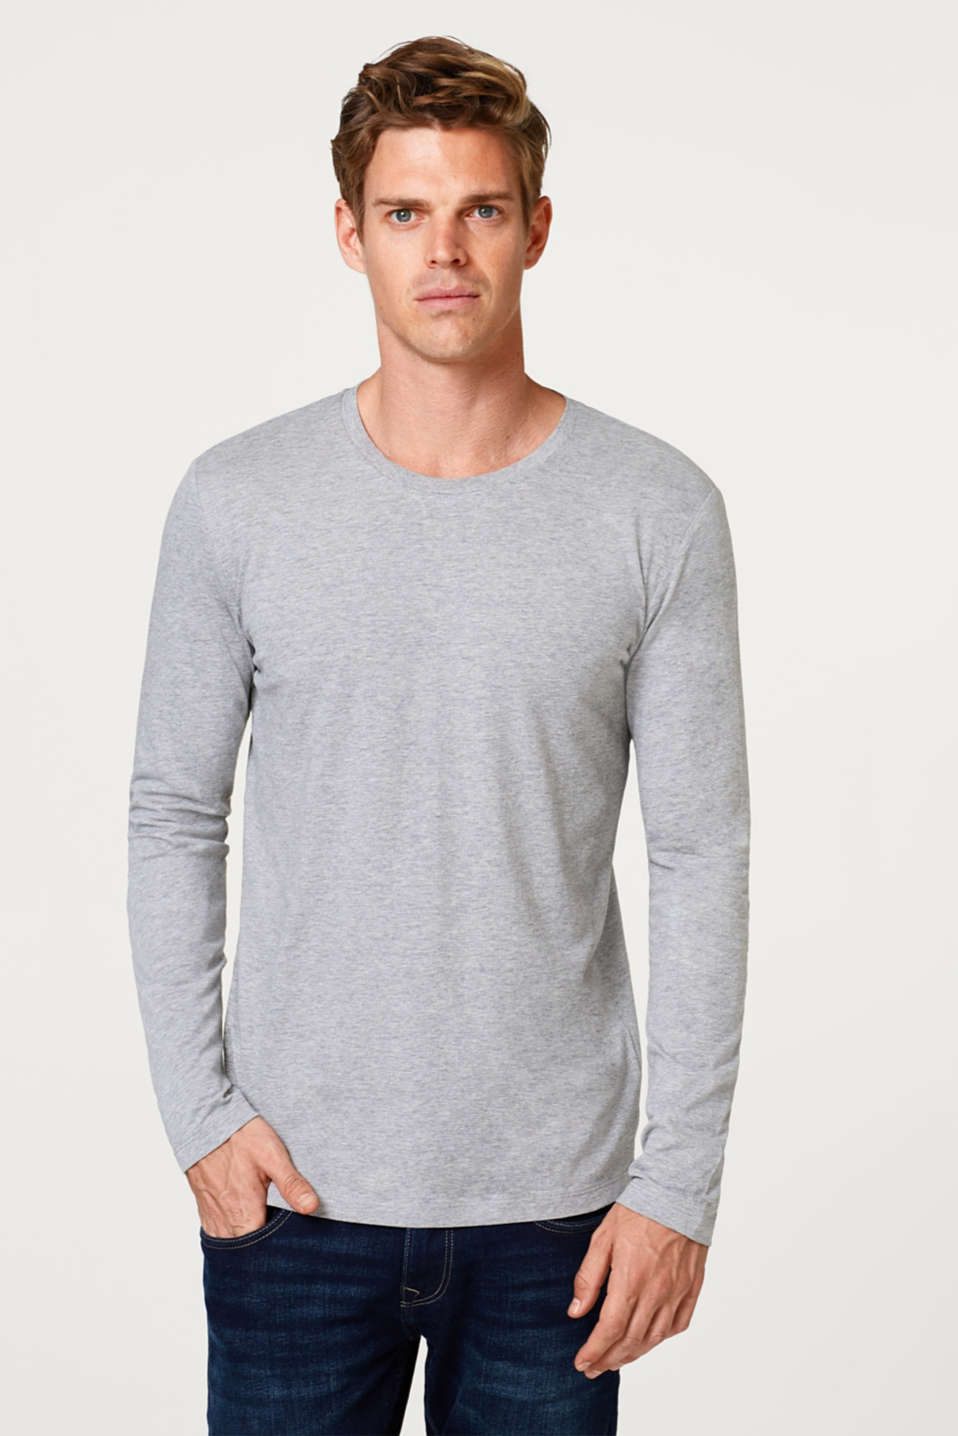 Esprit - Melange long sleeve jersey top